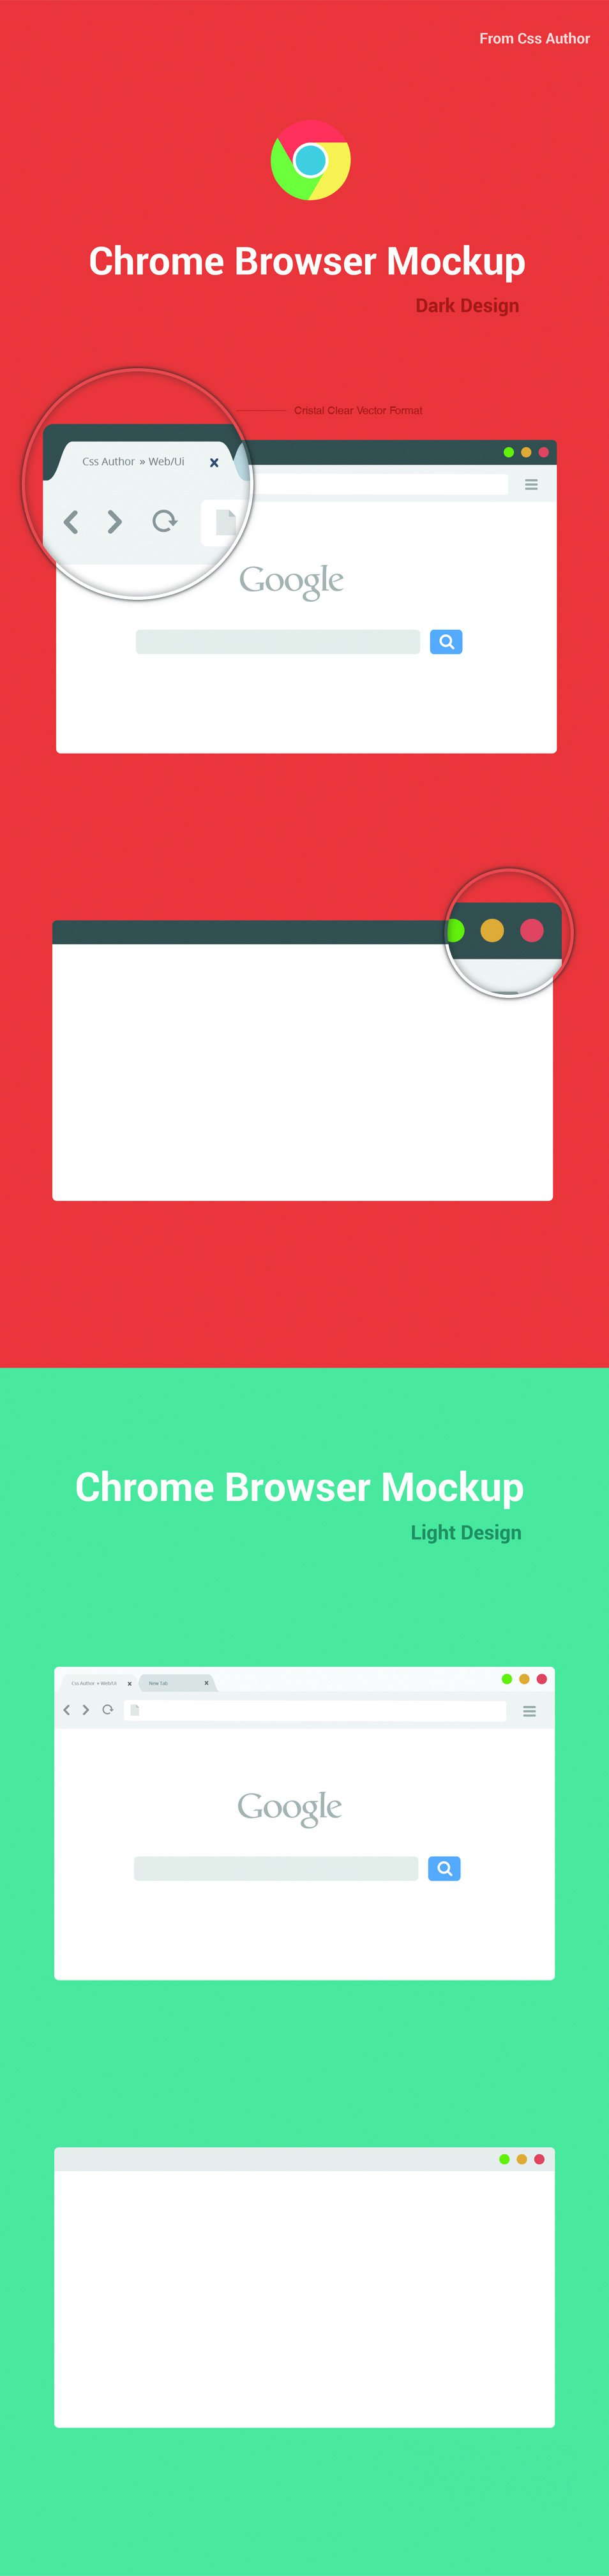 Browser Mockup Vector